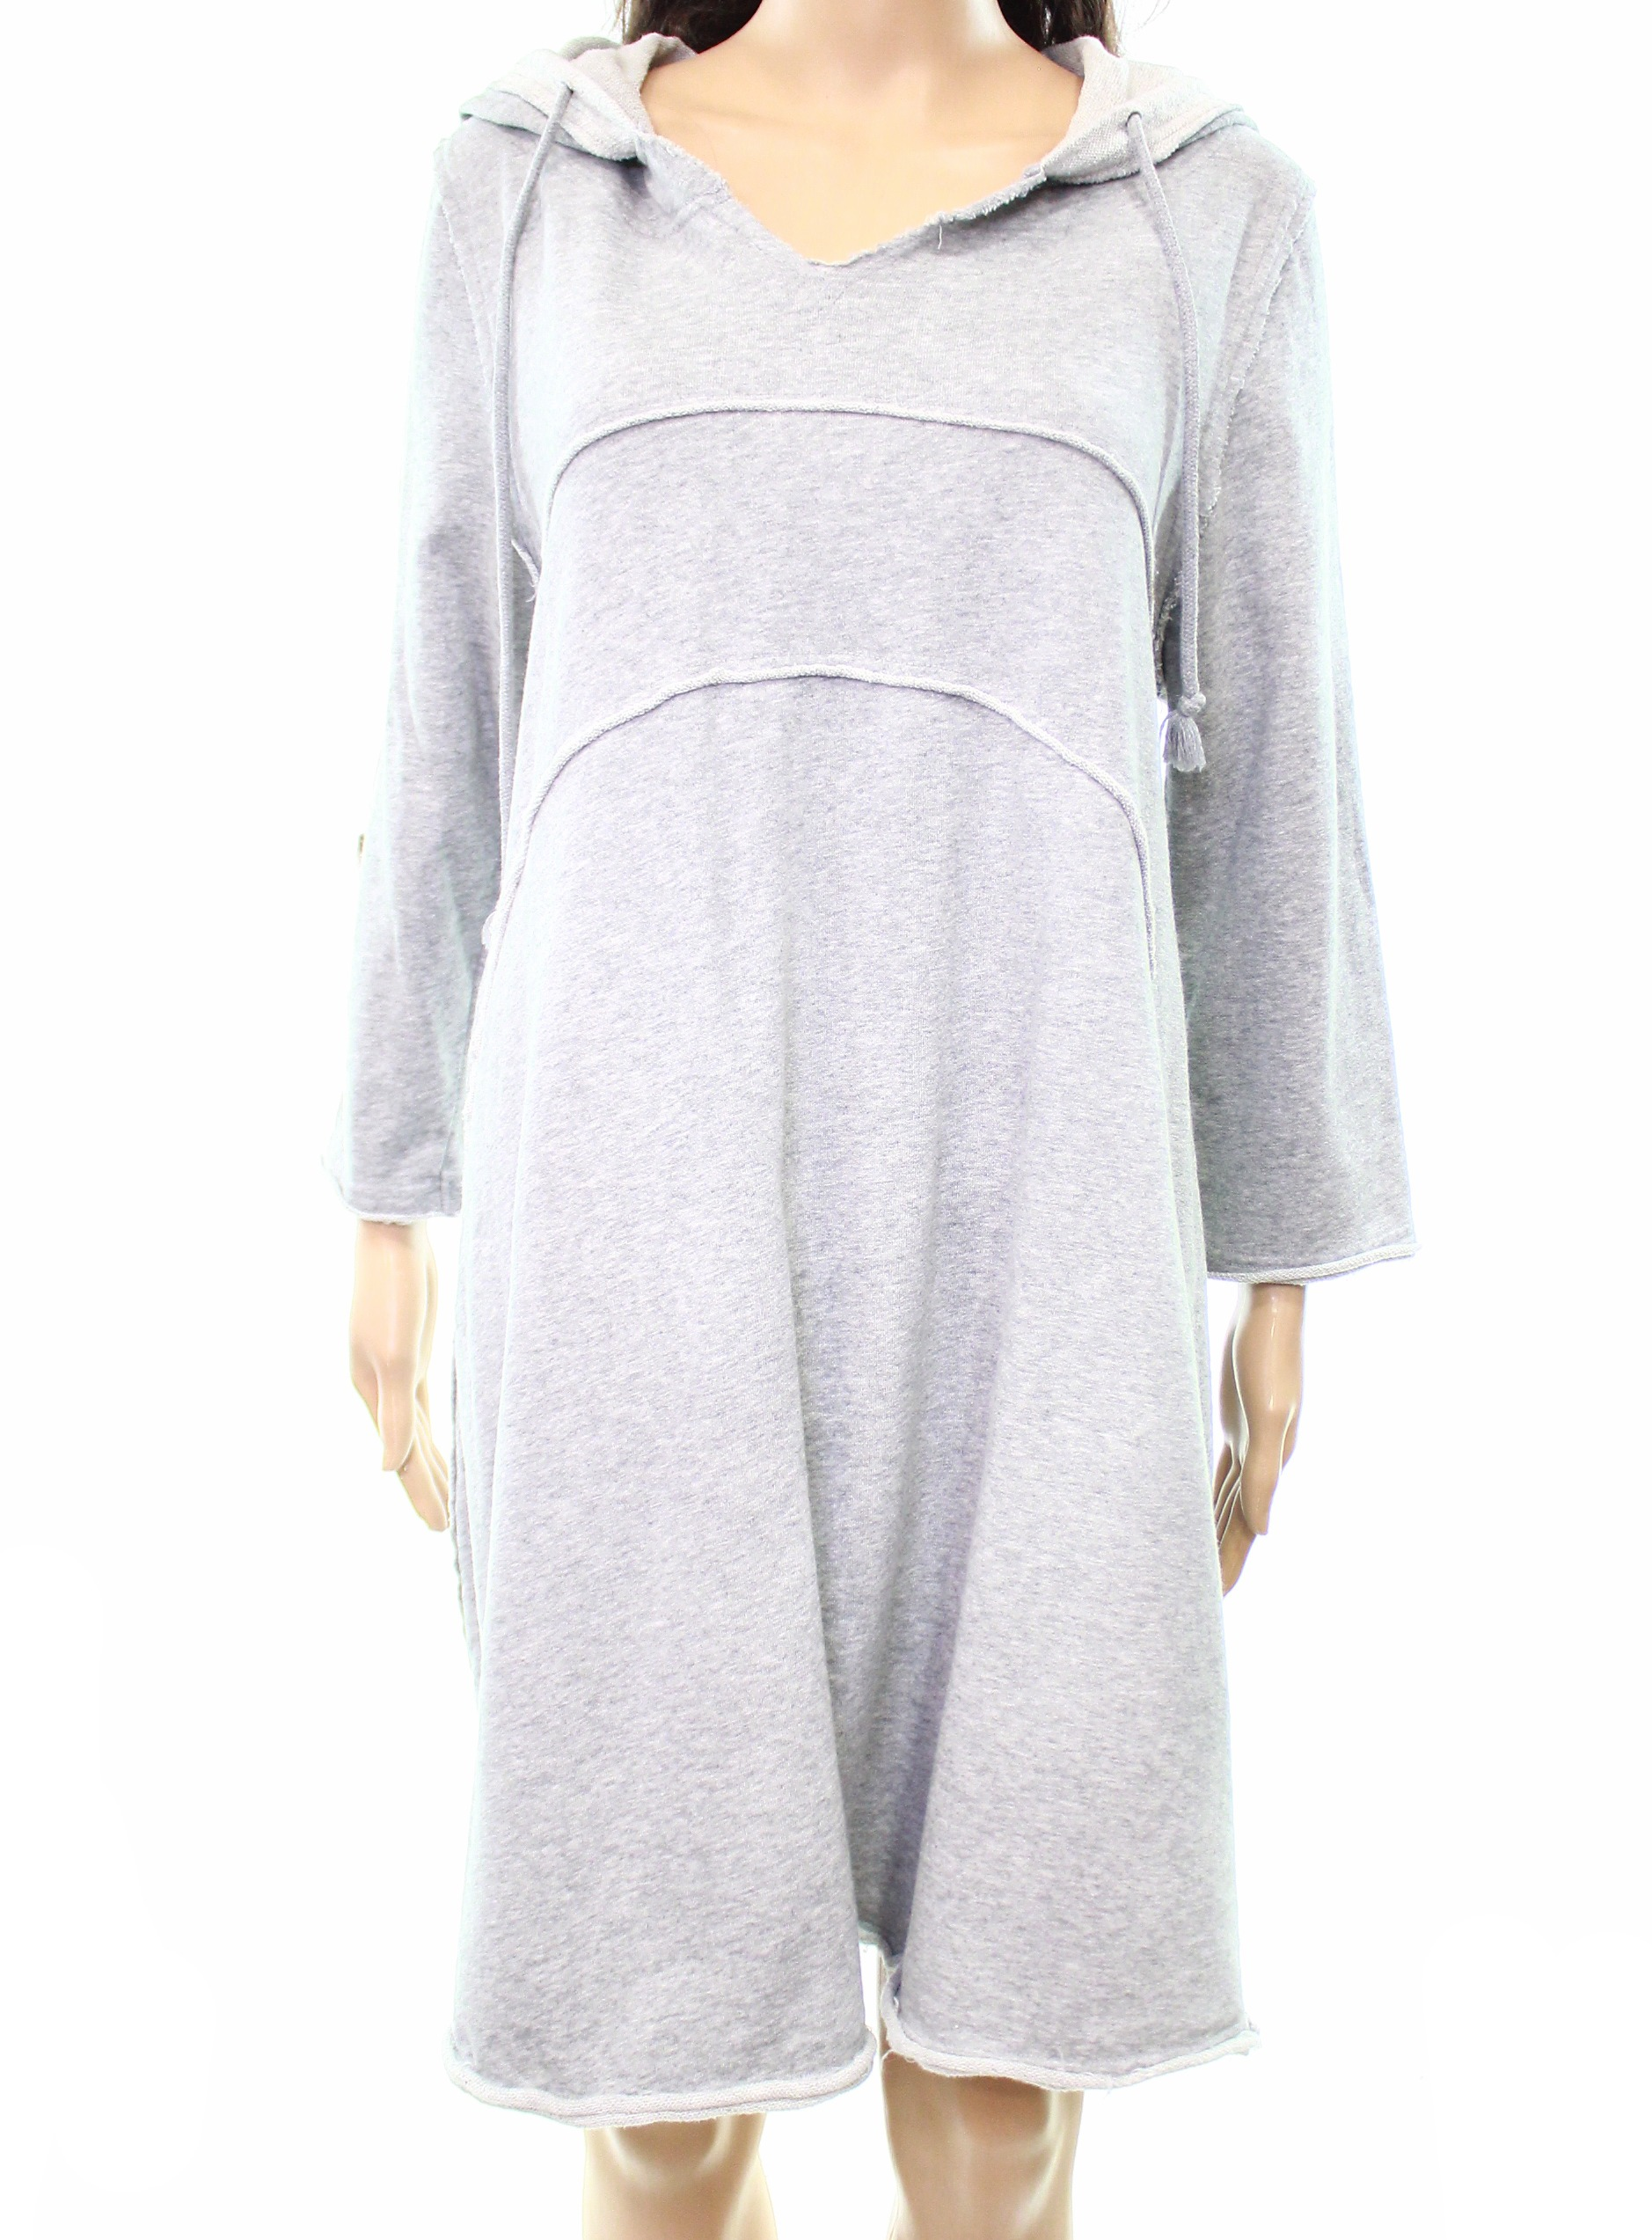 58523cad8ba Details about Solutions NEW Gray Womens Size Medium M Hooded Drawstring  Sweater Dress  85 486